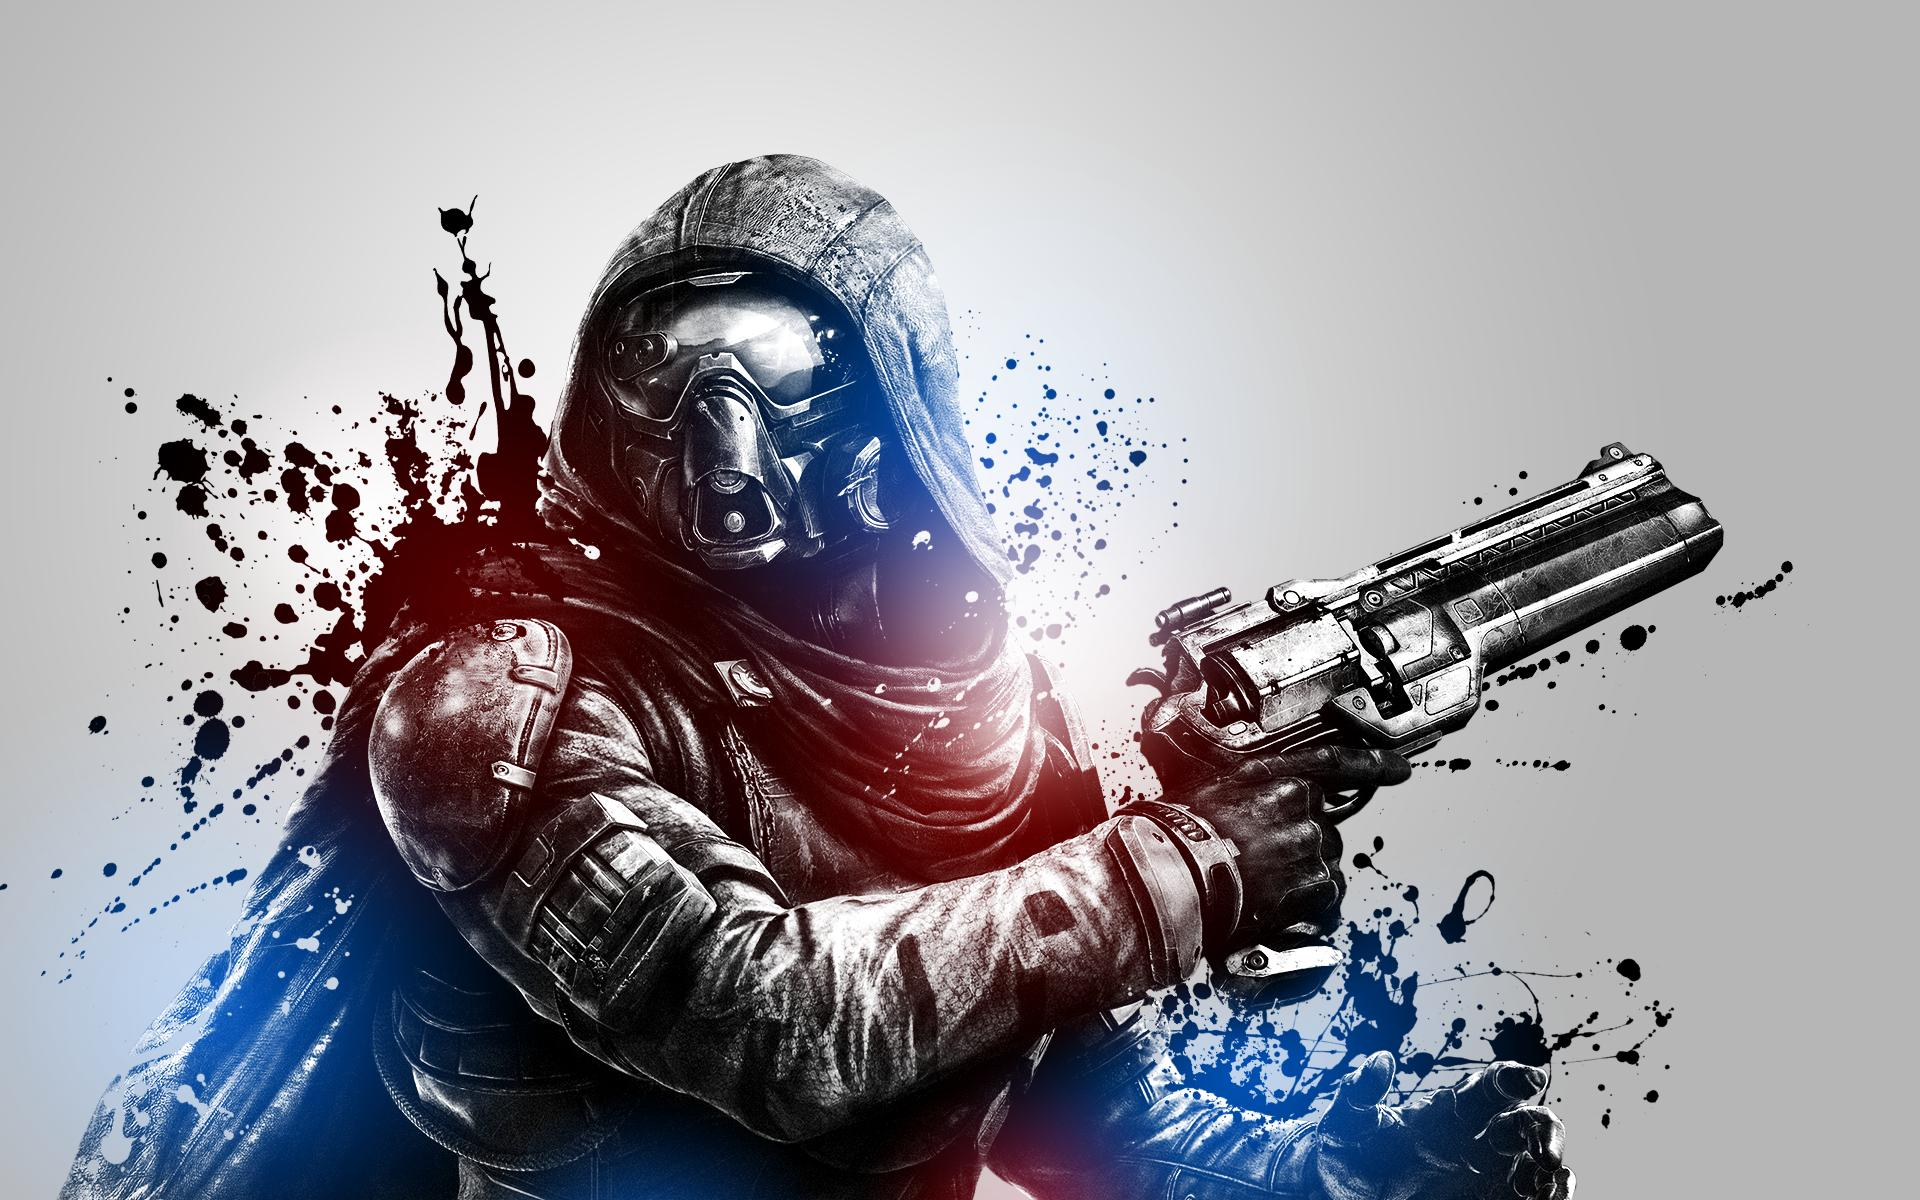 70 Awesome Destiny Wallpapers for your Computer Tablet or Phone 1920x1200